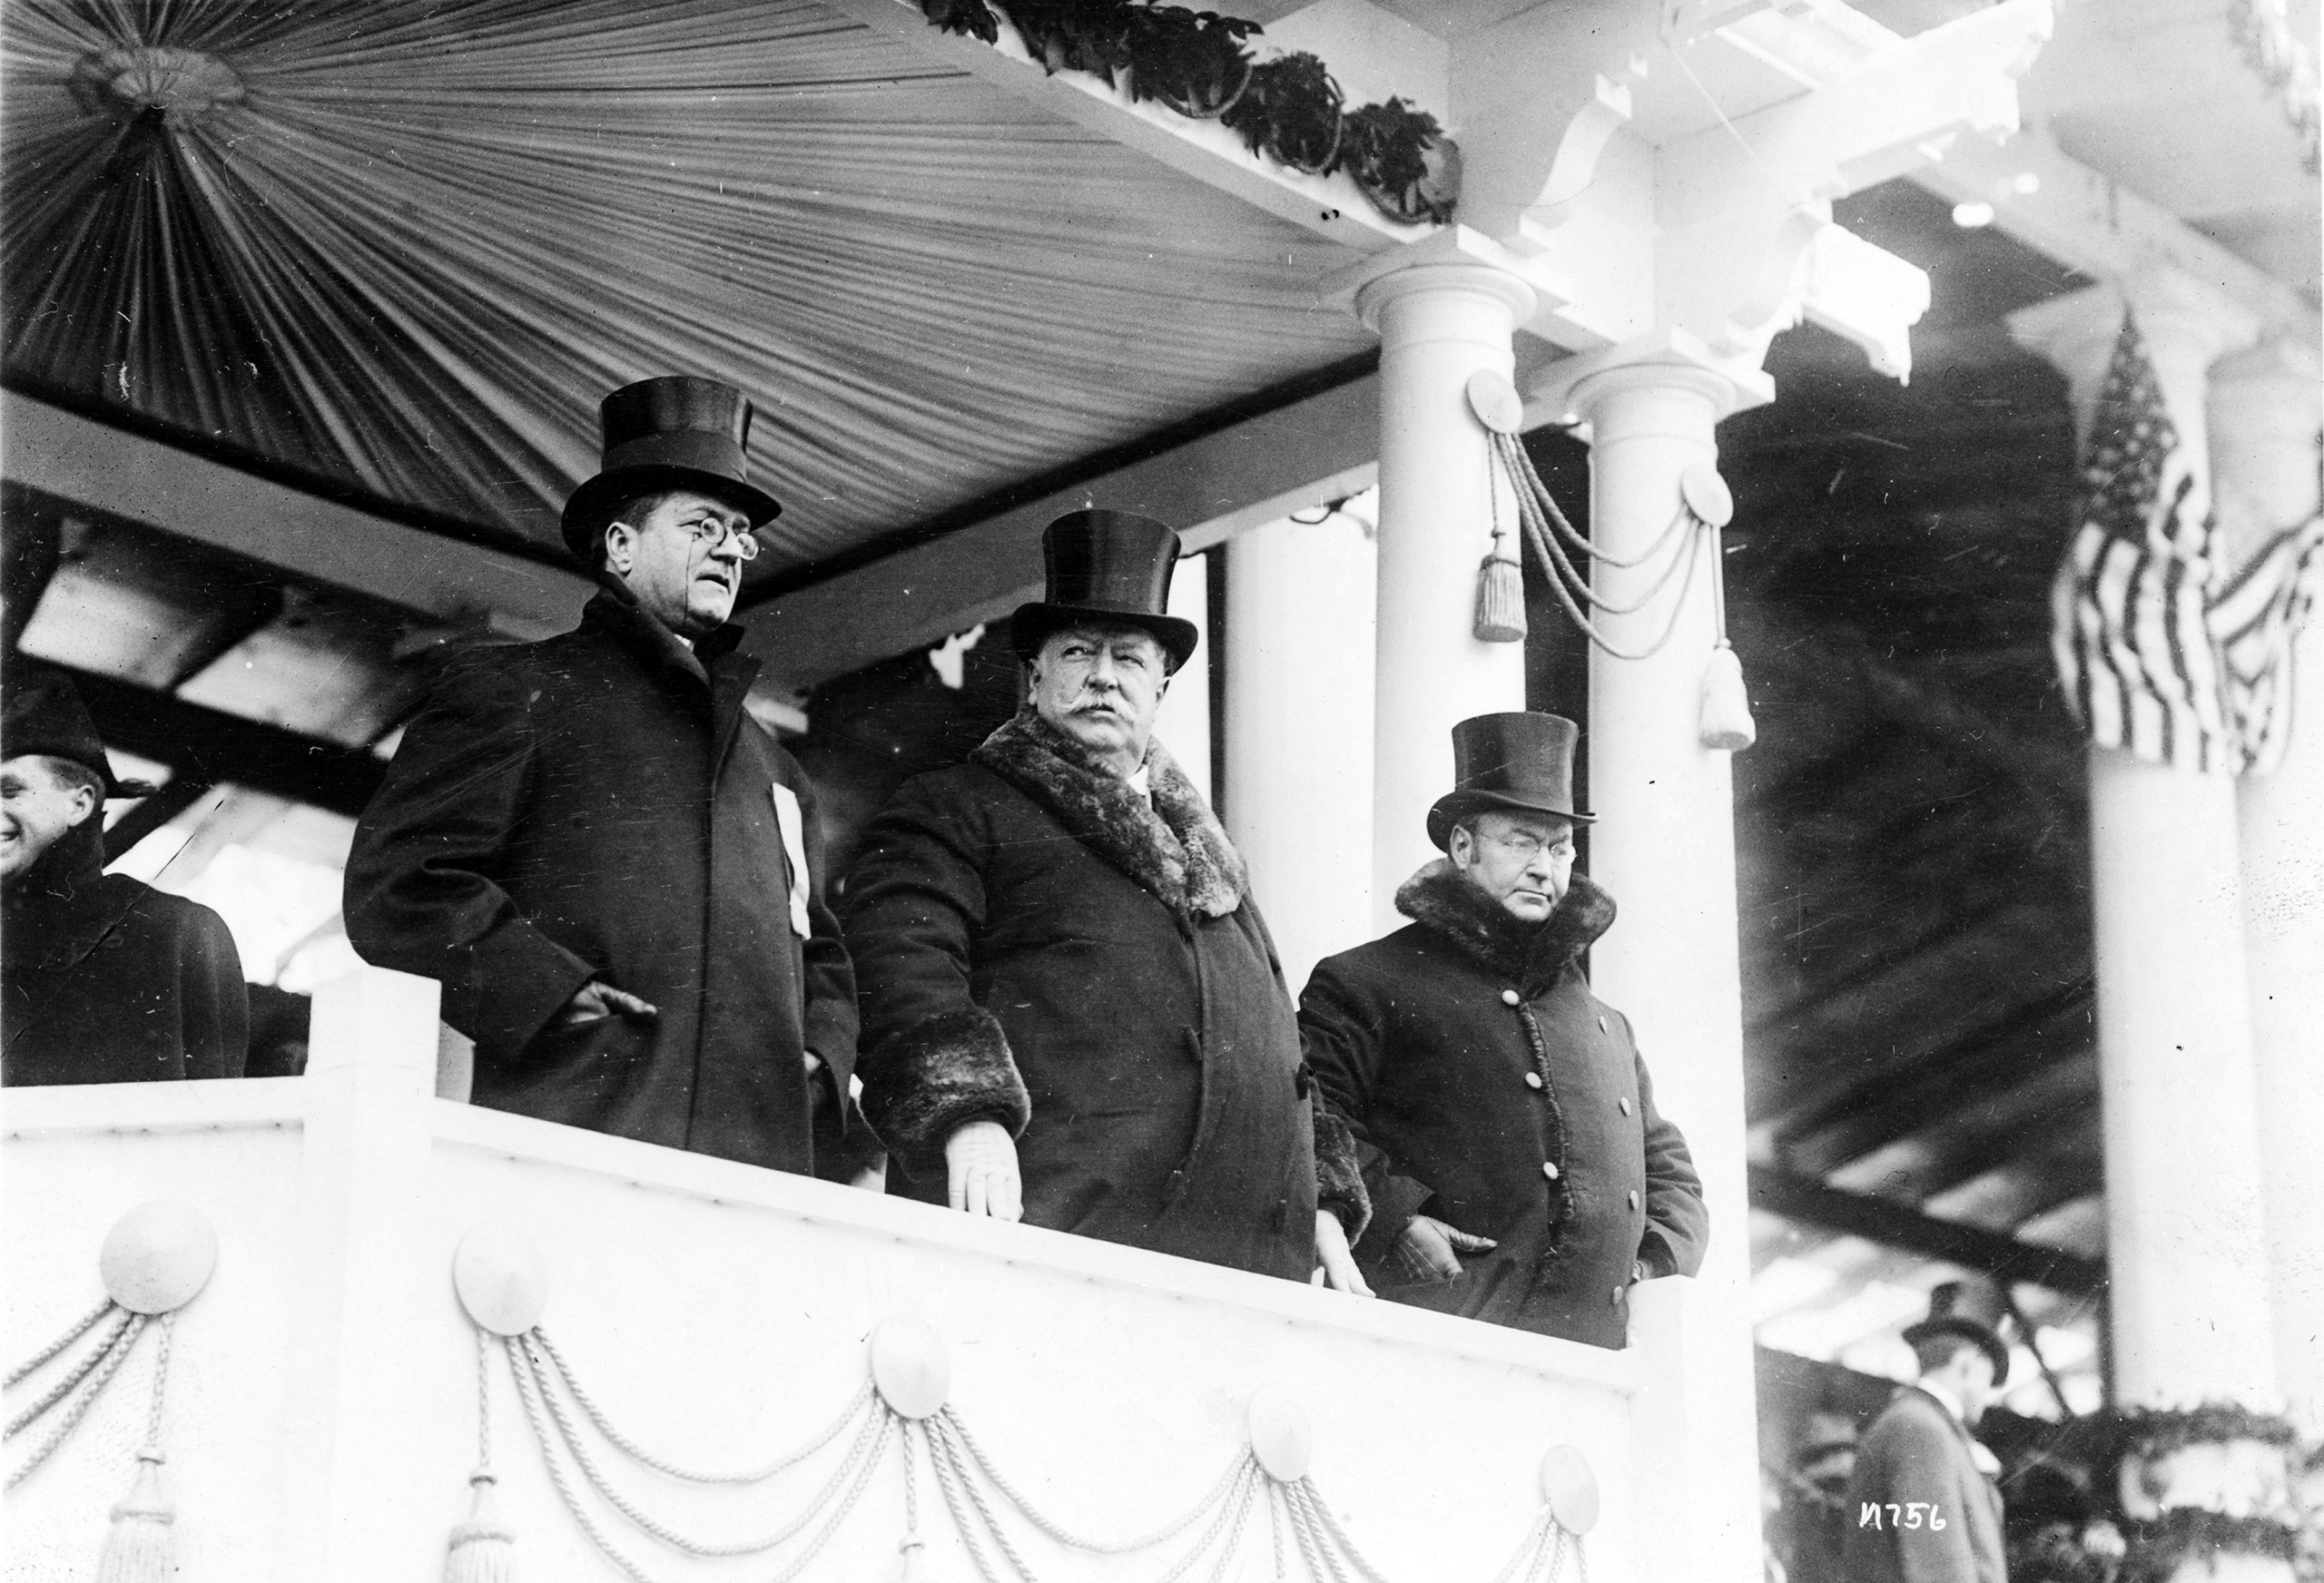 William Howard Taft with Edward F. Stallwagon, Chief of the Inaugural Committee, and with Vice President James S. Sherman. A severe blizzard hindered the inaugural ceremonies, 1909.